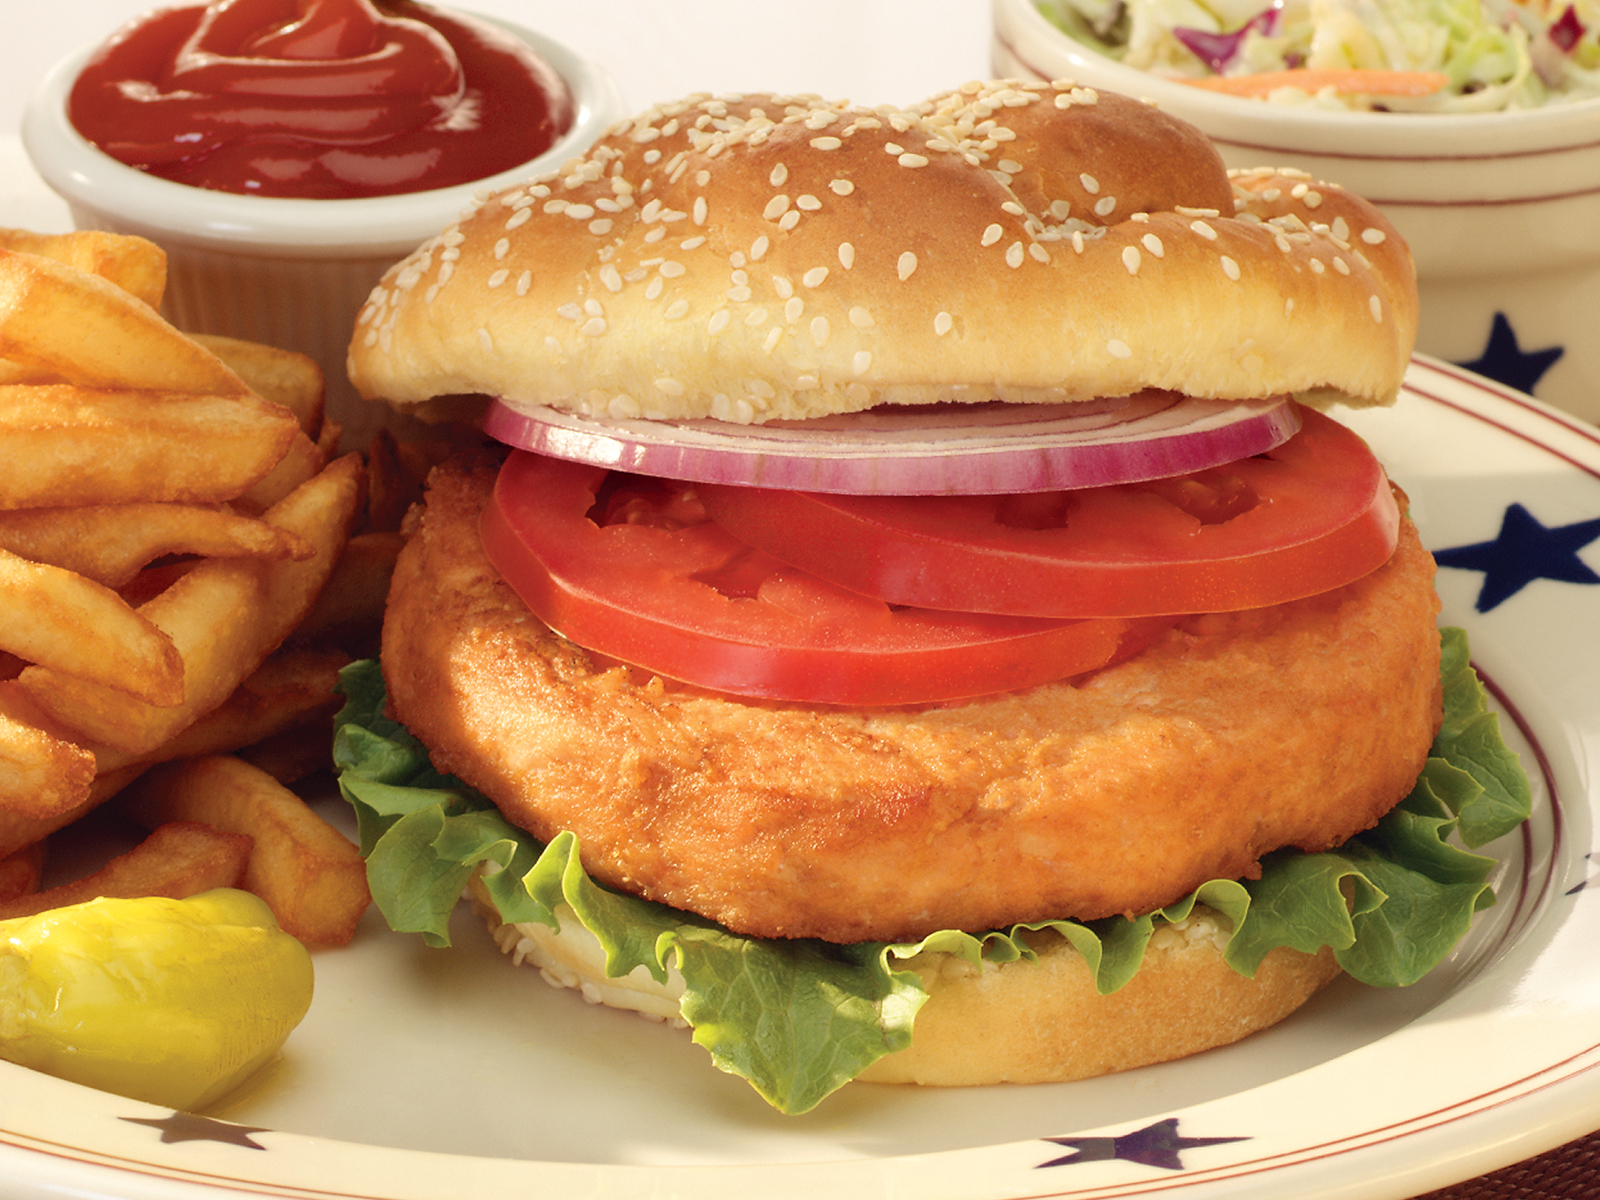 Alaskan Salmon Burger 7.5 oz (1/17 lb) 490174